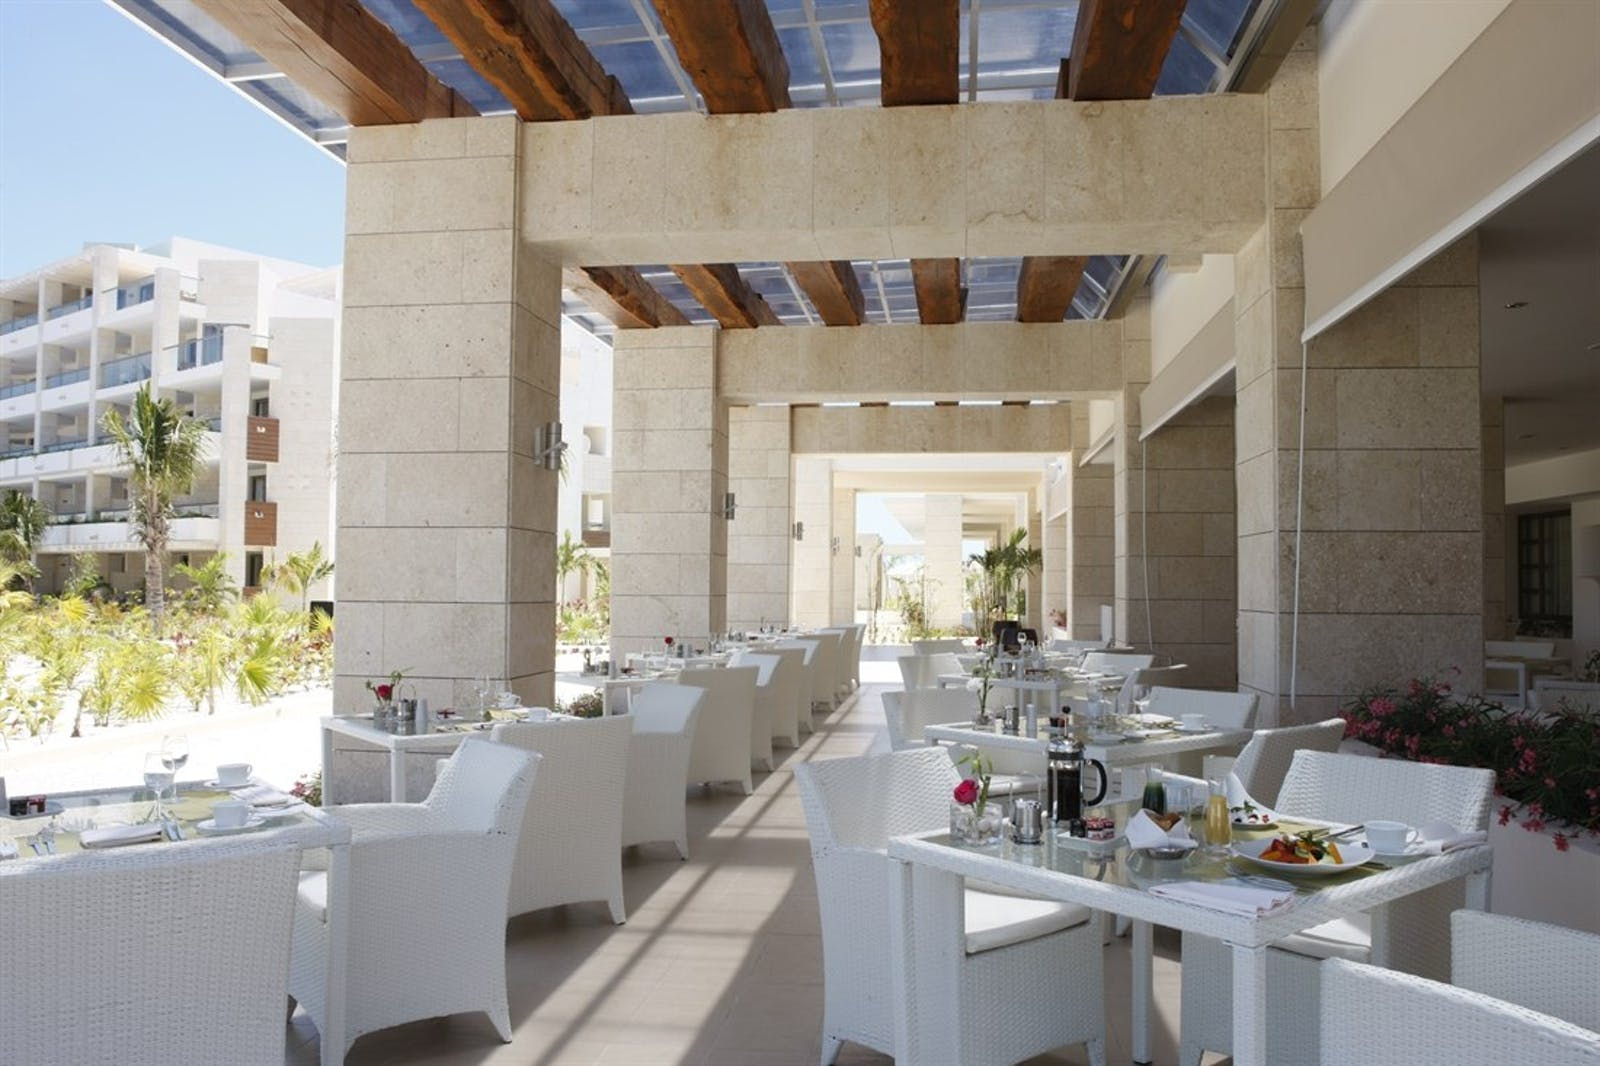 Al Fresco Dining at The Beloved Hotel, Riviera Maya, Mexico